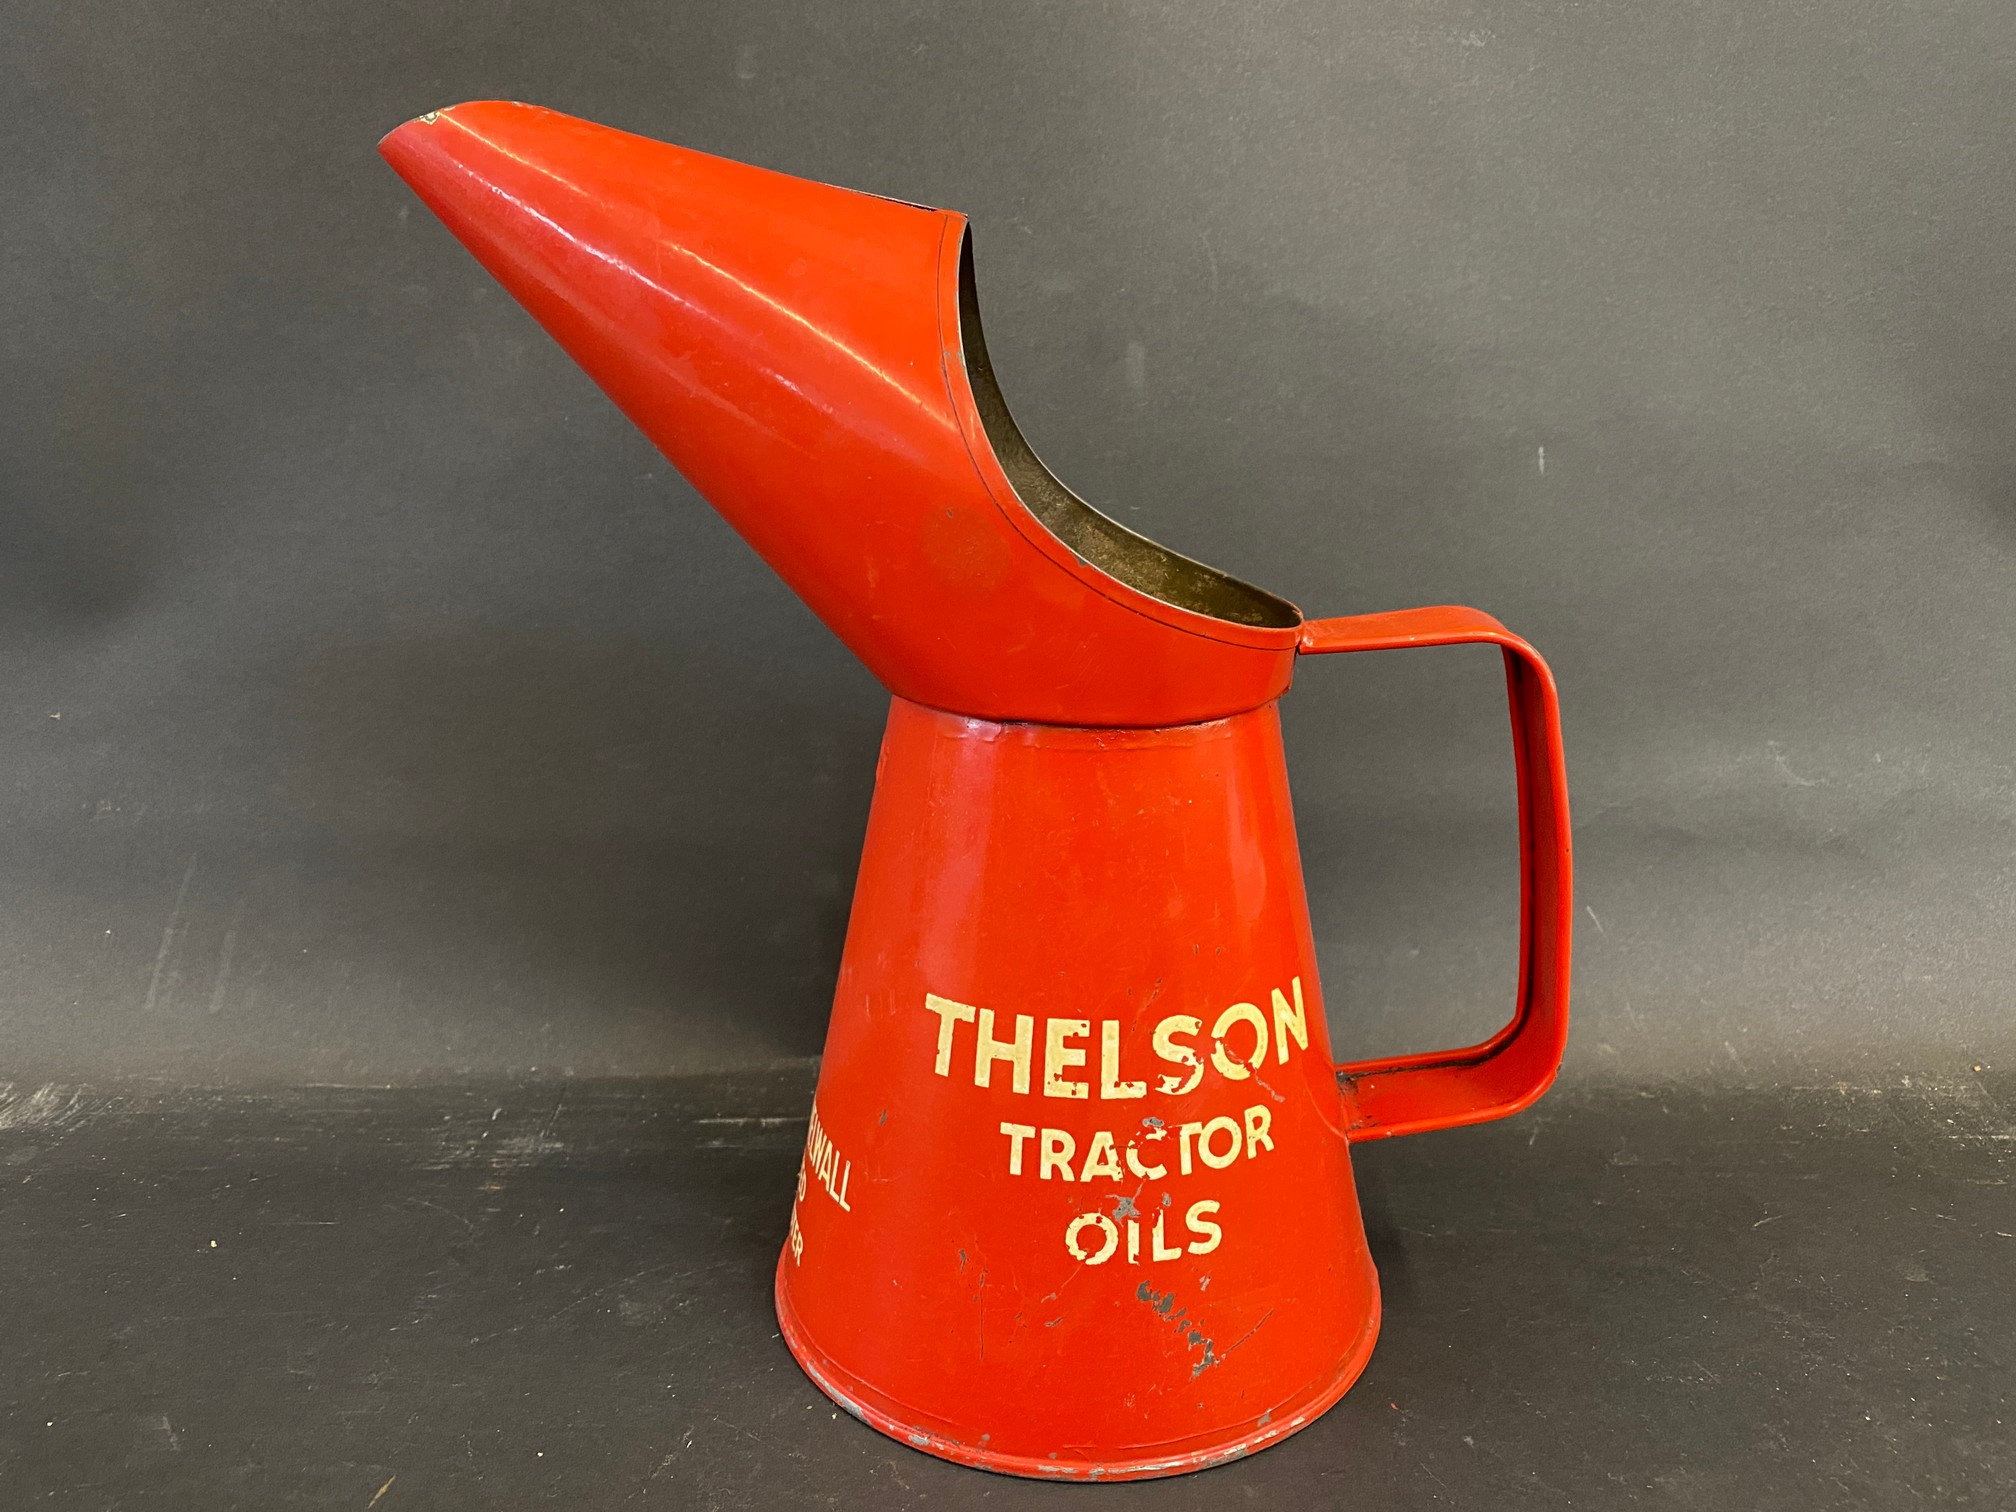 A Thelson Tractor Oils quart measure, in good condition.